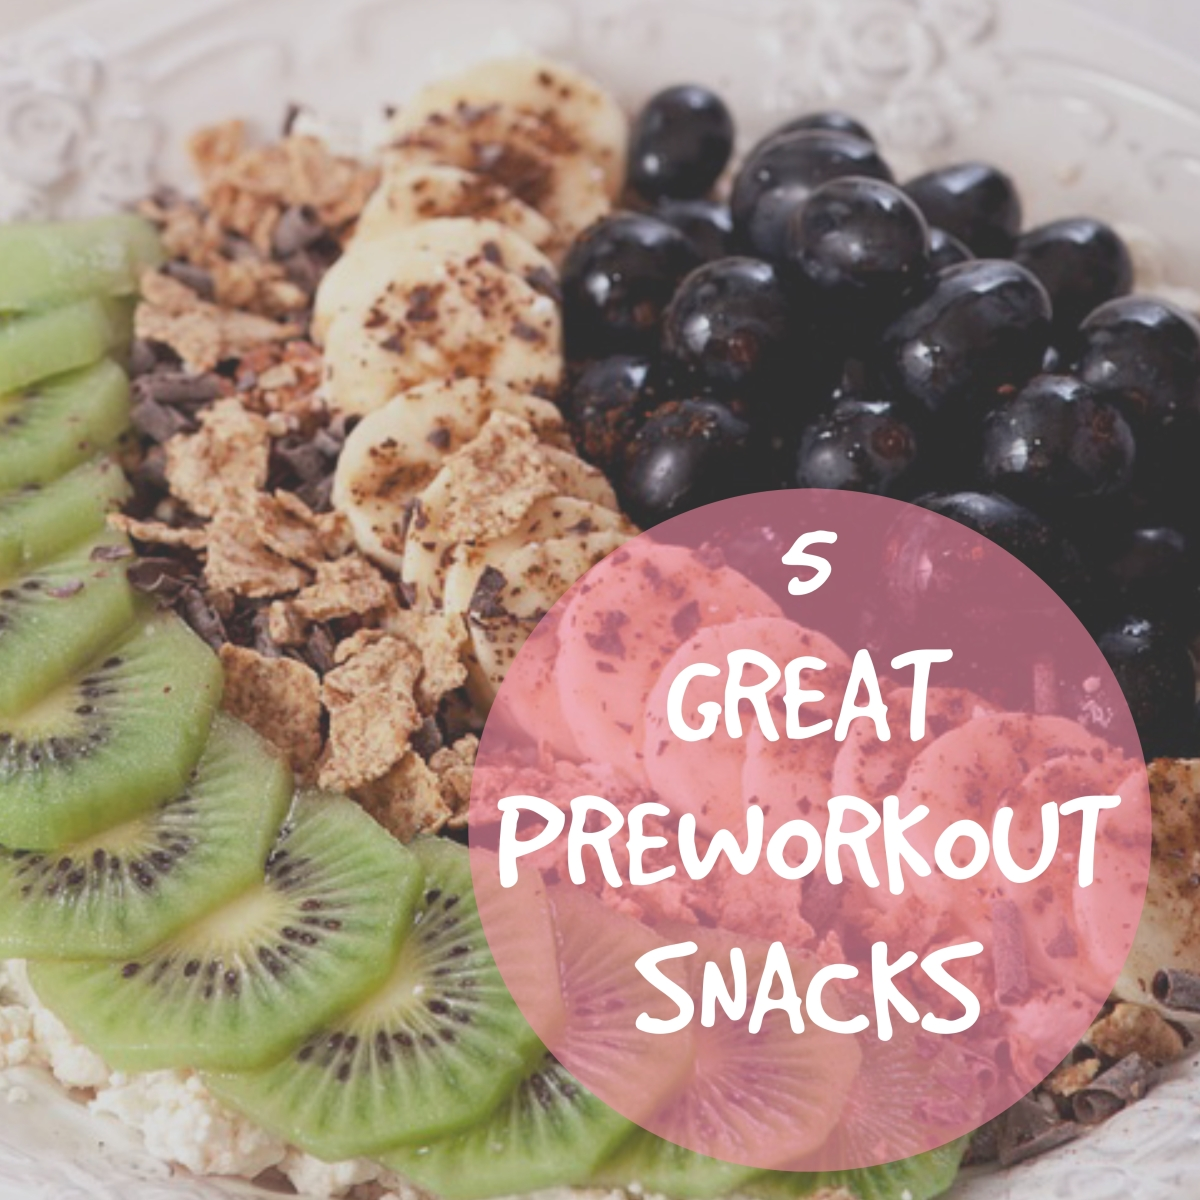 5 Great Pre-workout Snacks